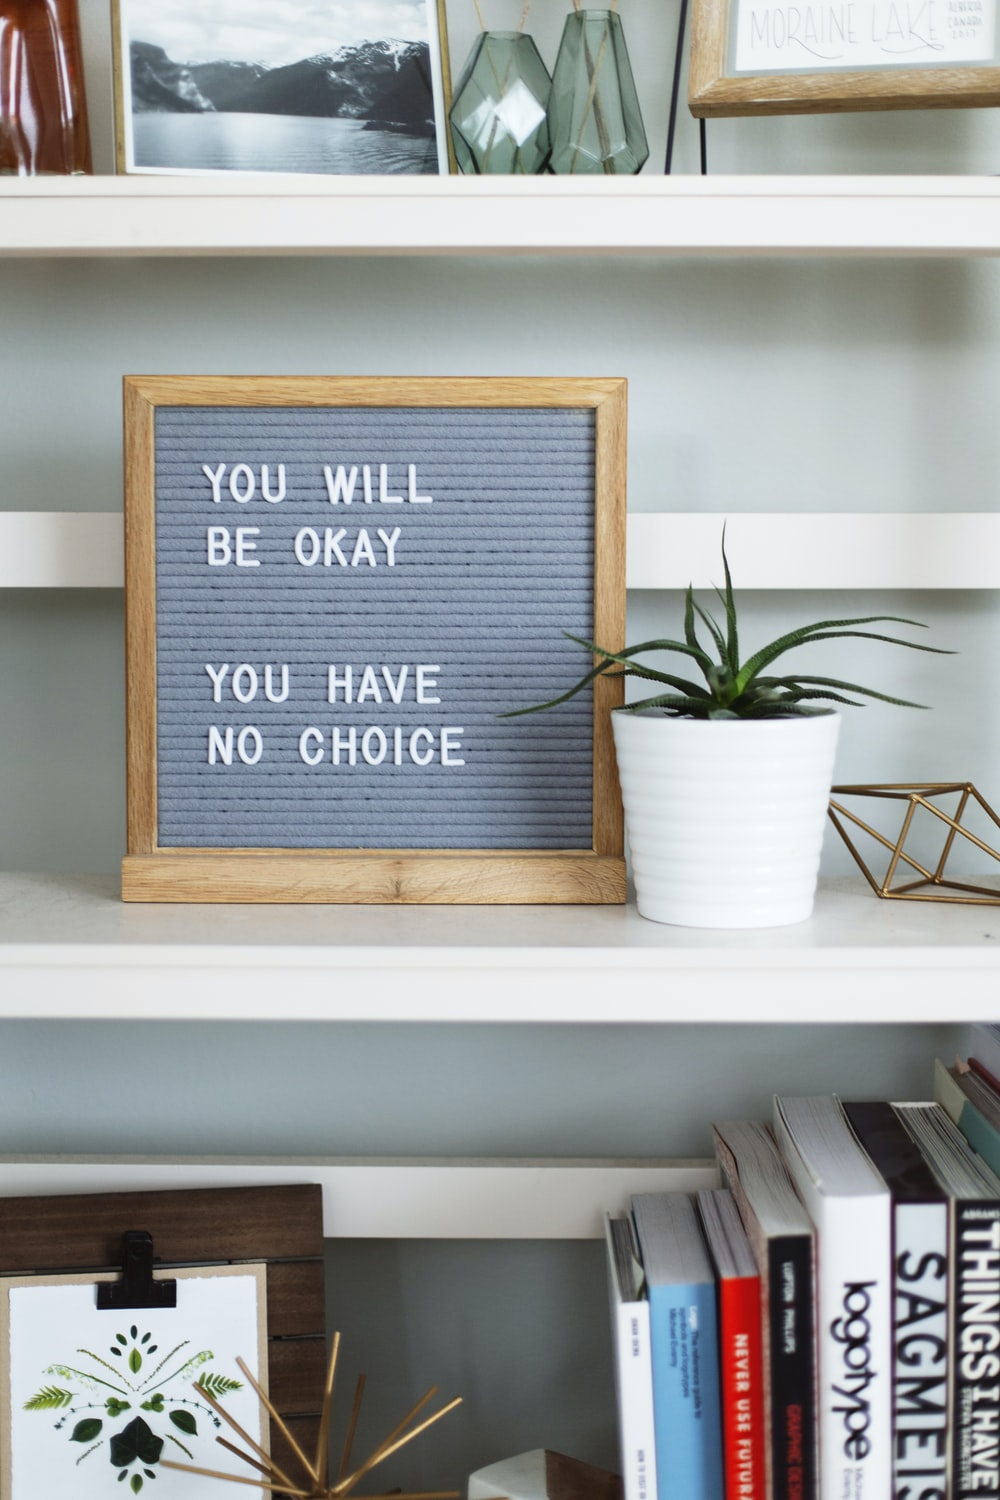 You will be okay you have no choice box